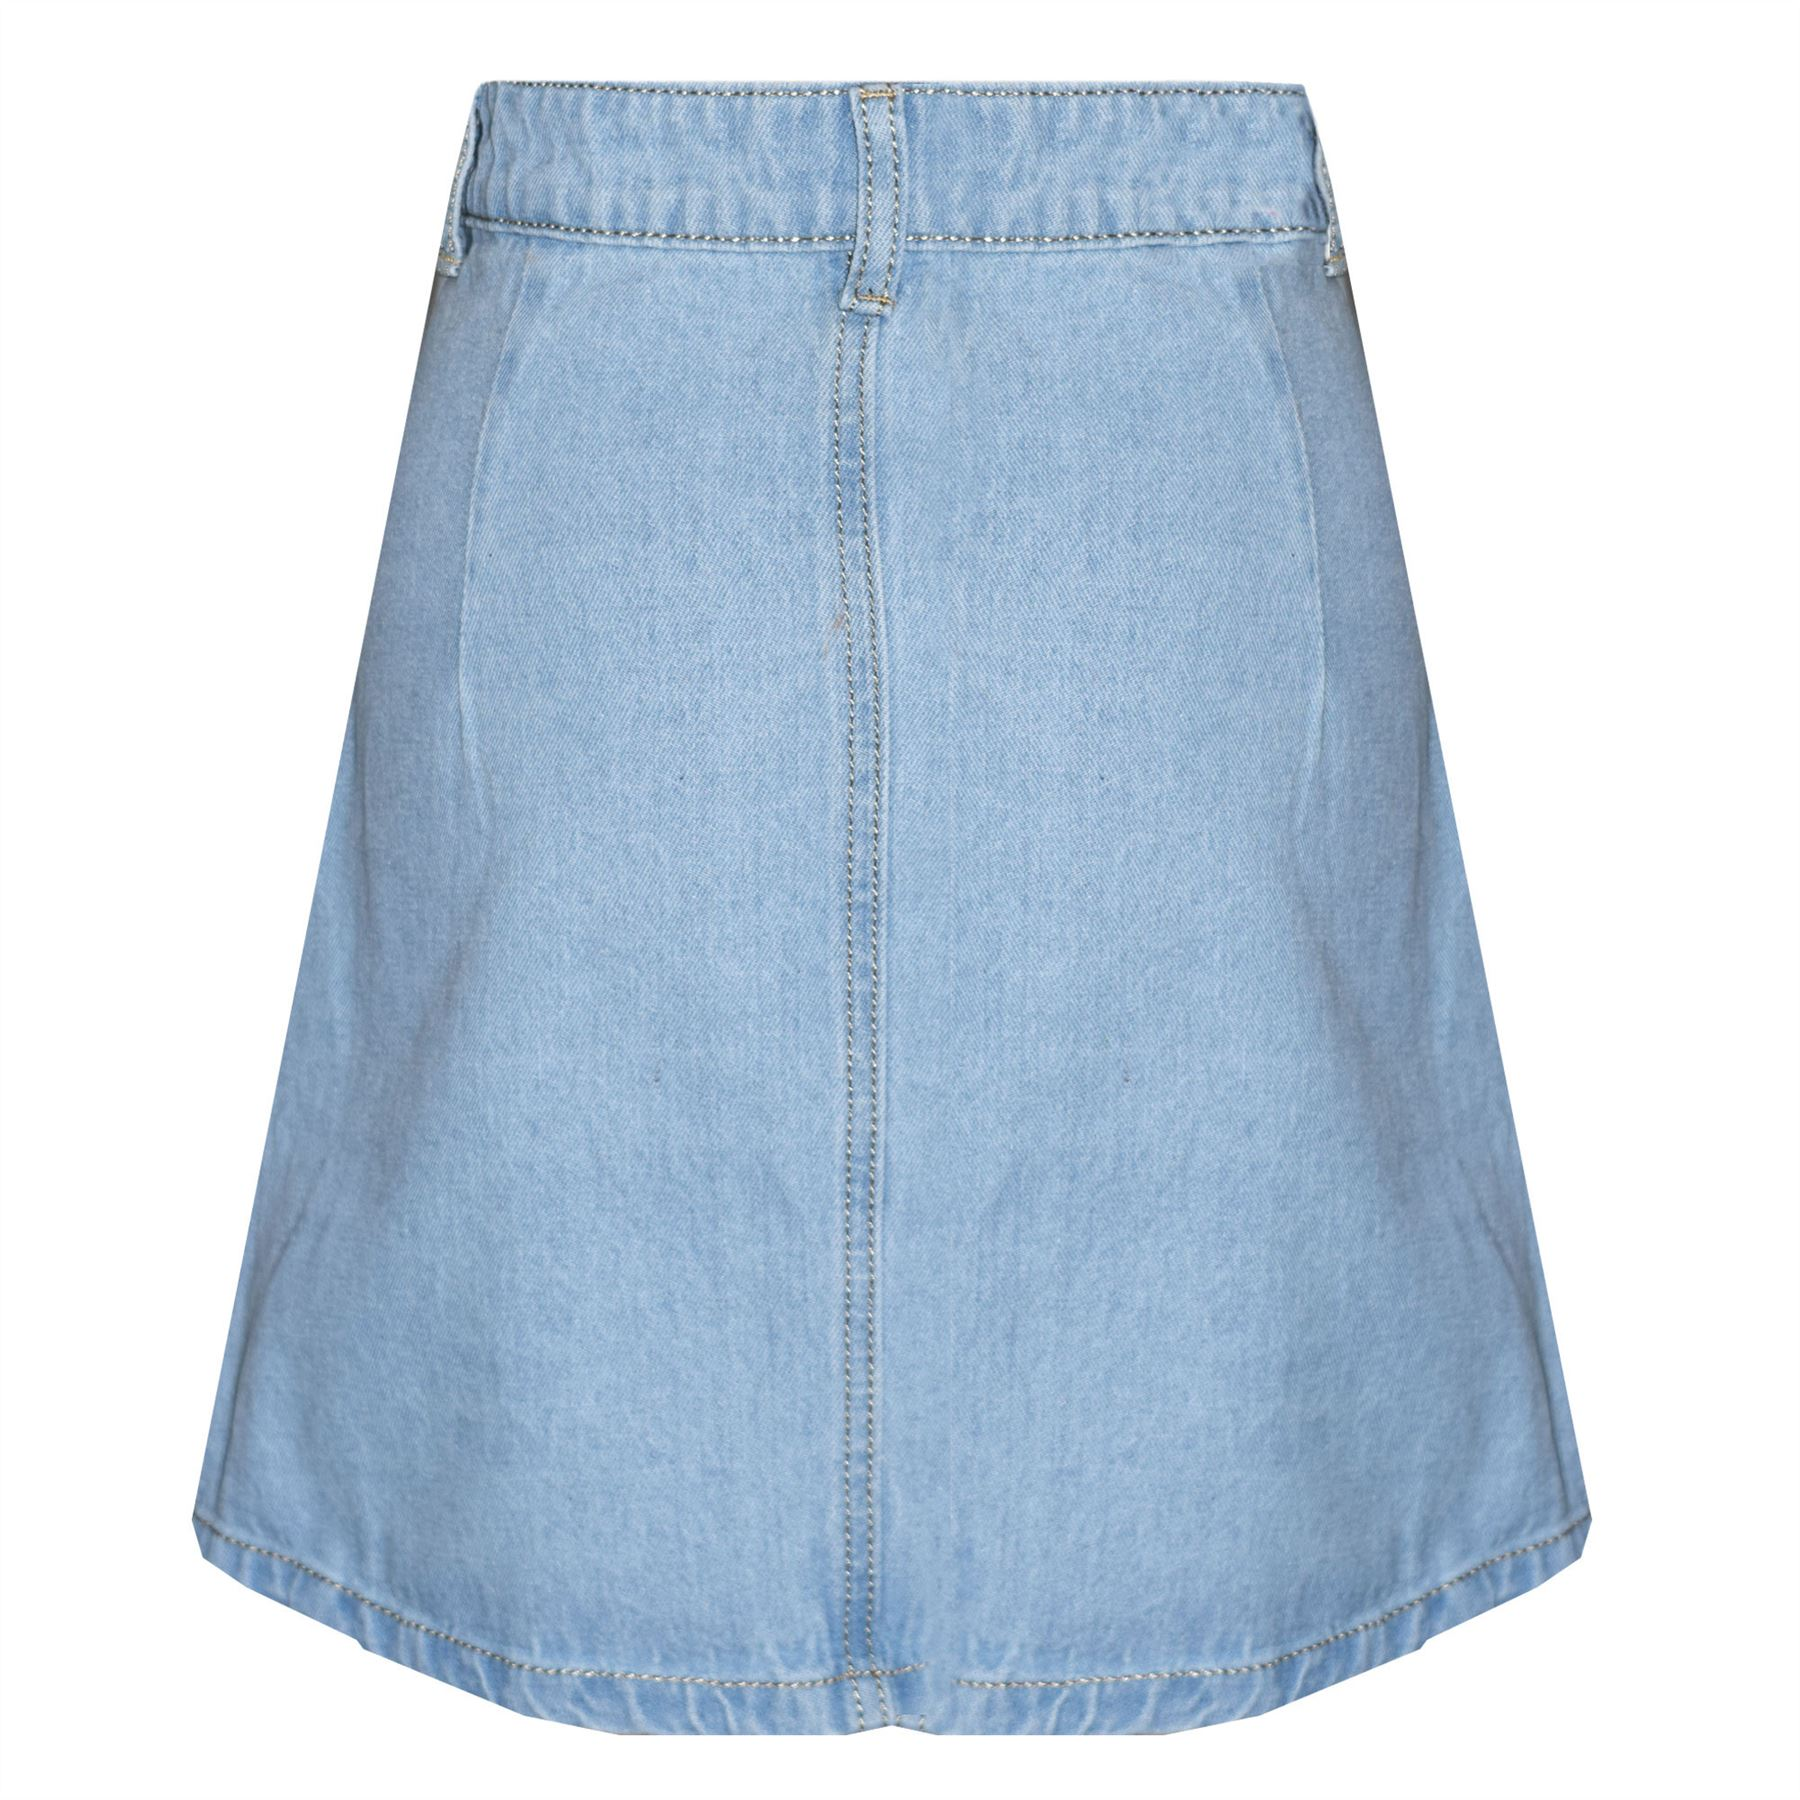 New-Womens-Ladies-Fashionable-Button-Front-High-Waisted-Jeans-Denim-Mini-Skirt